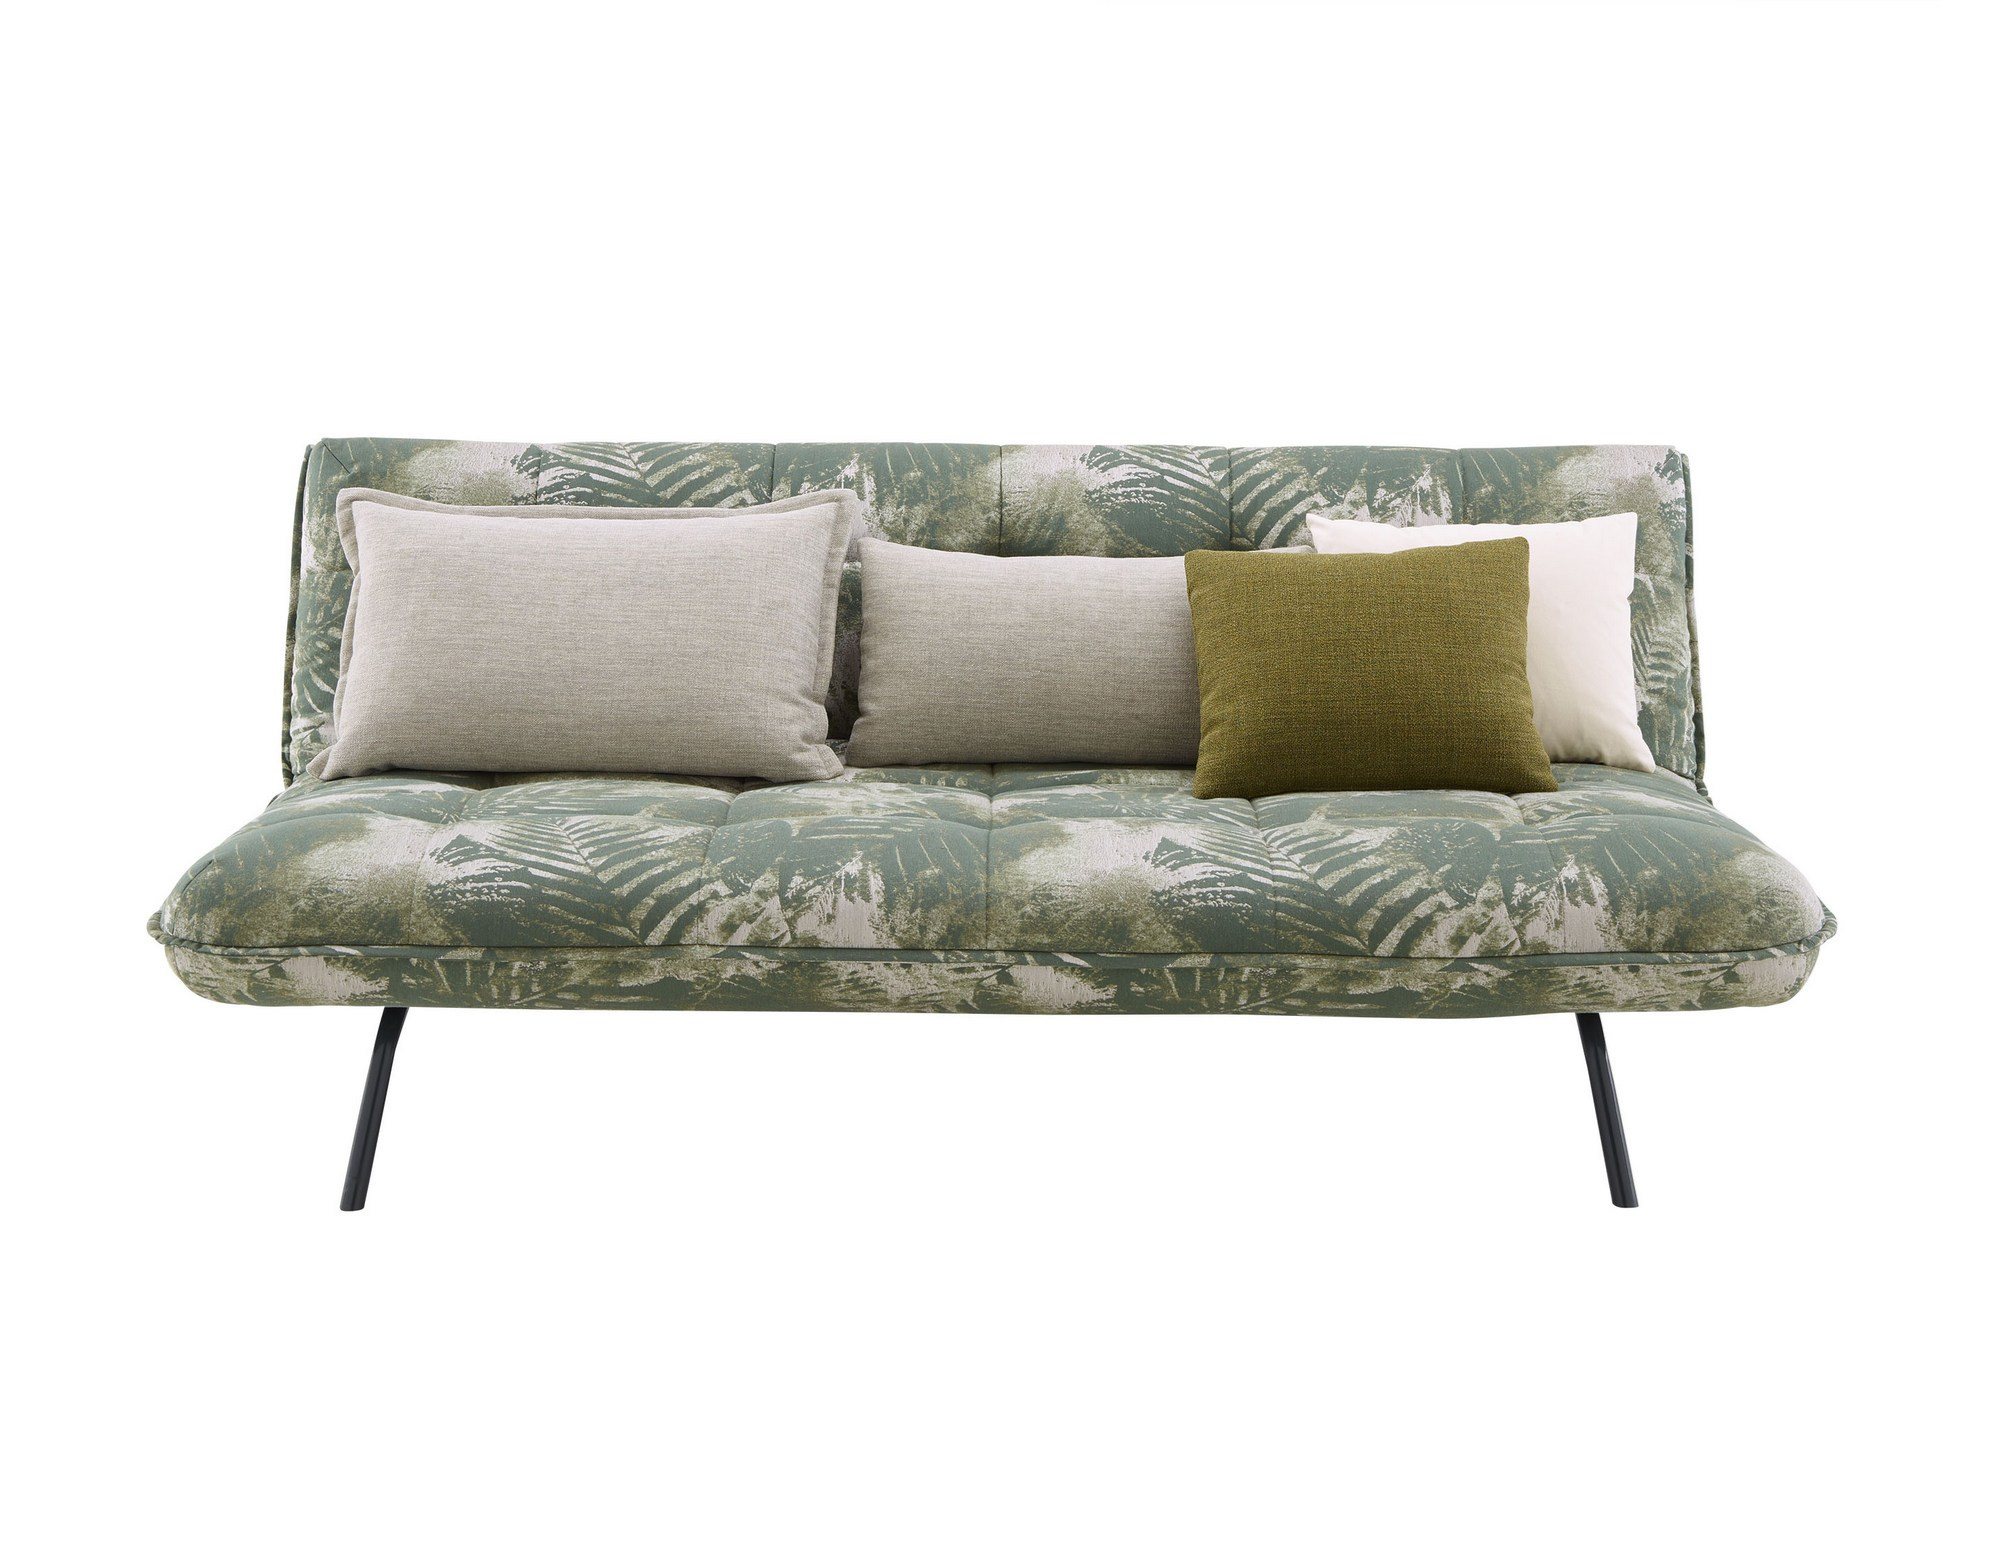 Design Attack Schlafsofas Design Sofa Berlin Fairmont Designs Sofa Set Berlin Fa D3819